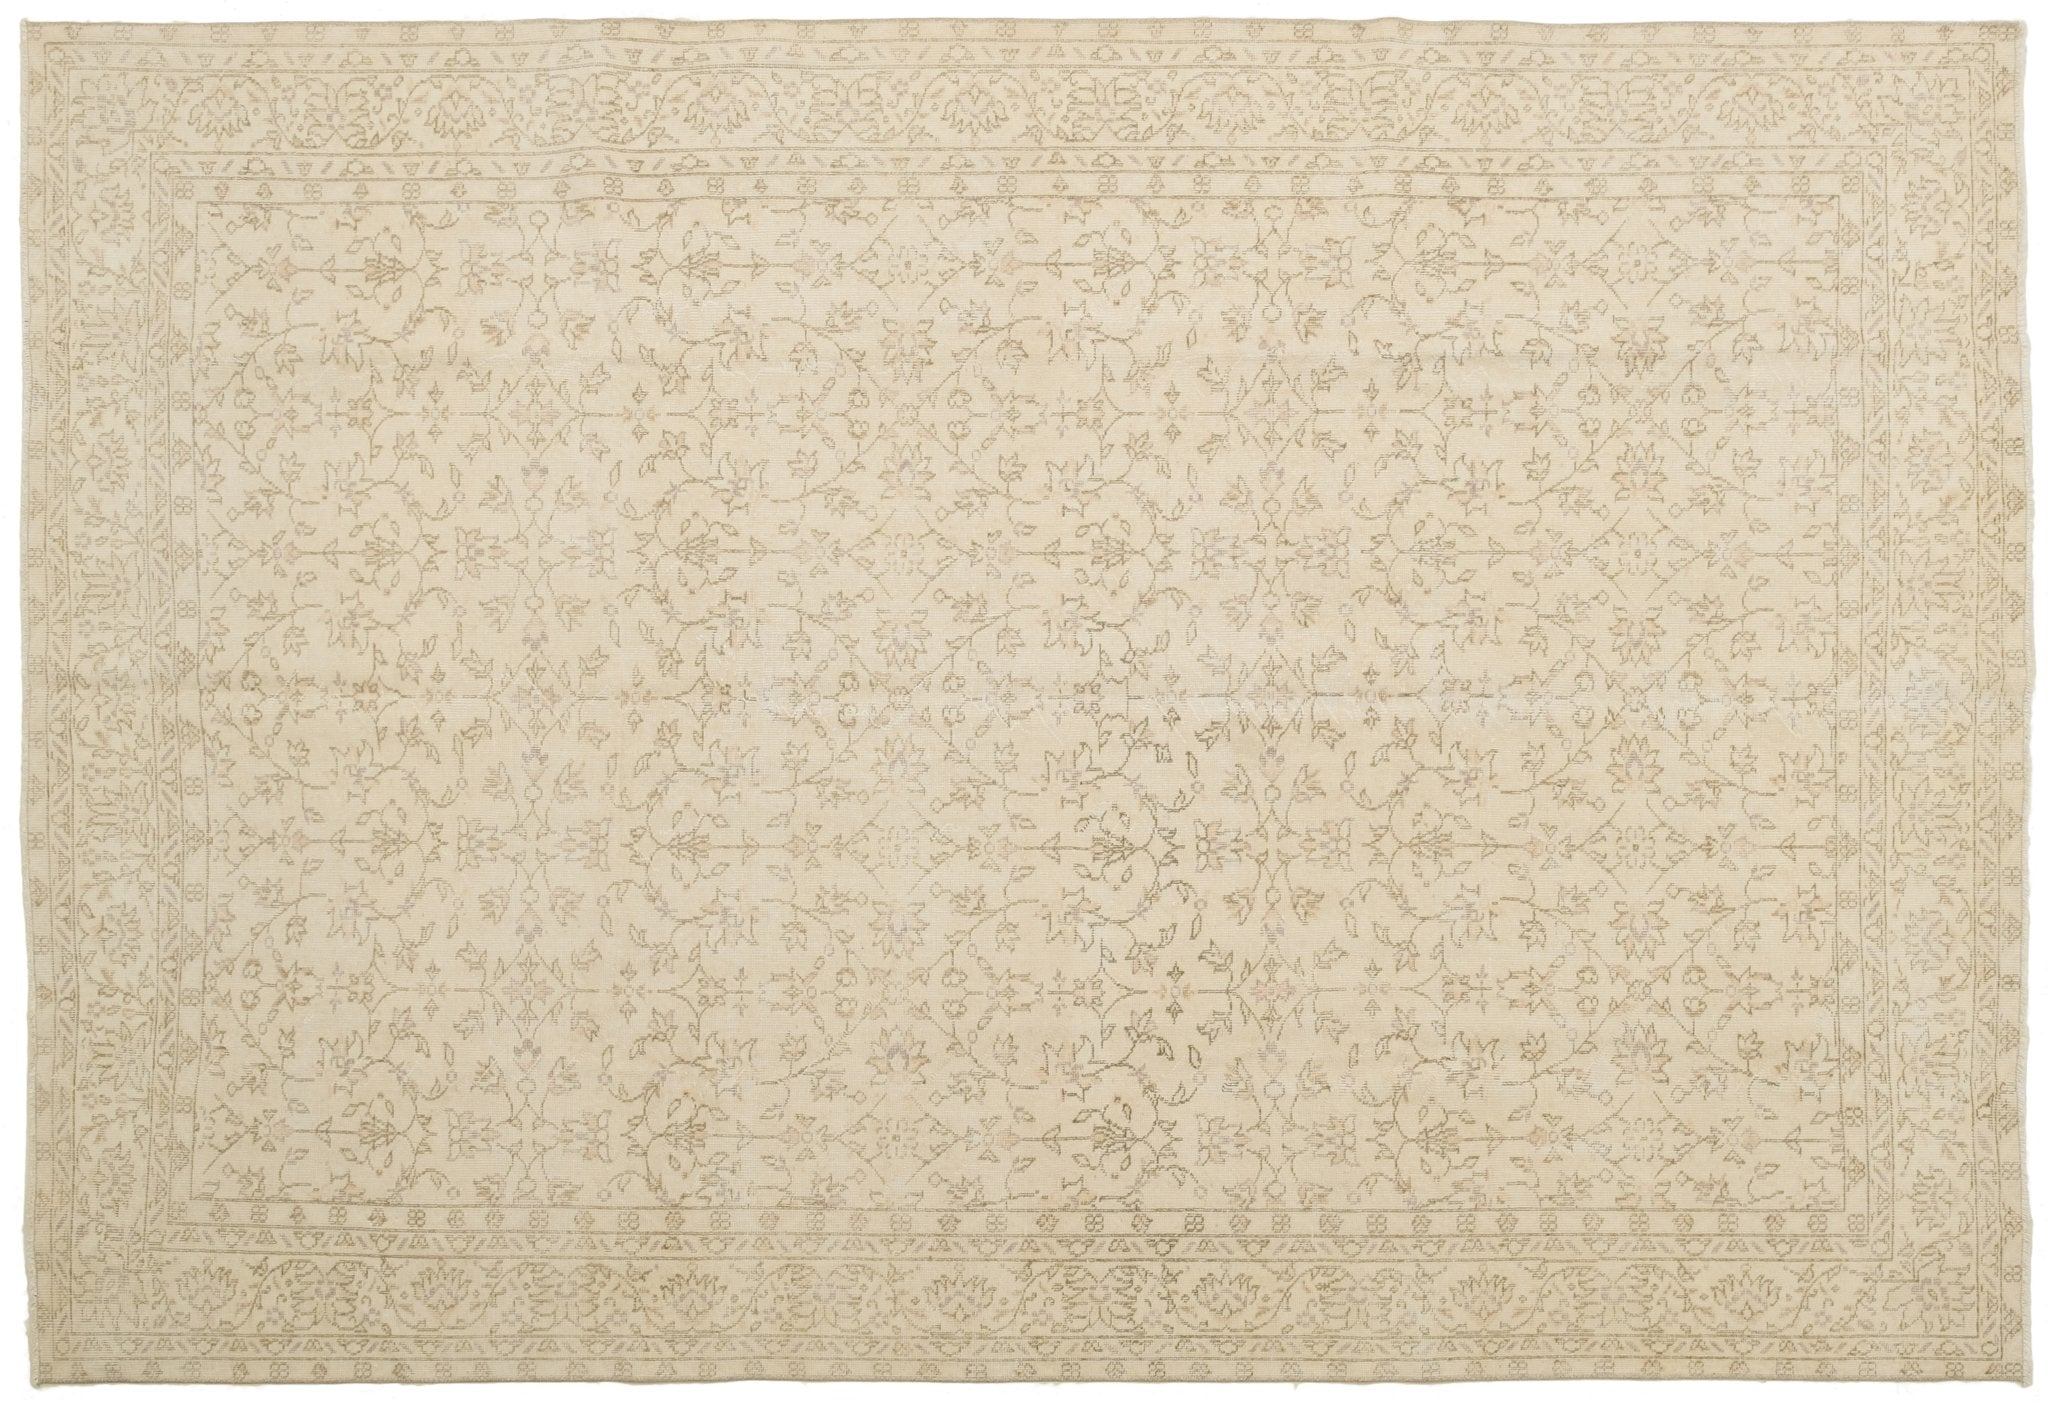 Handknotted Rug Marthese